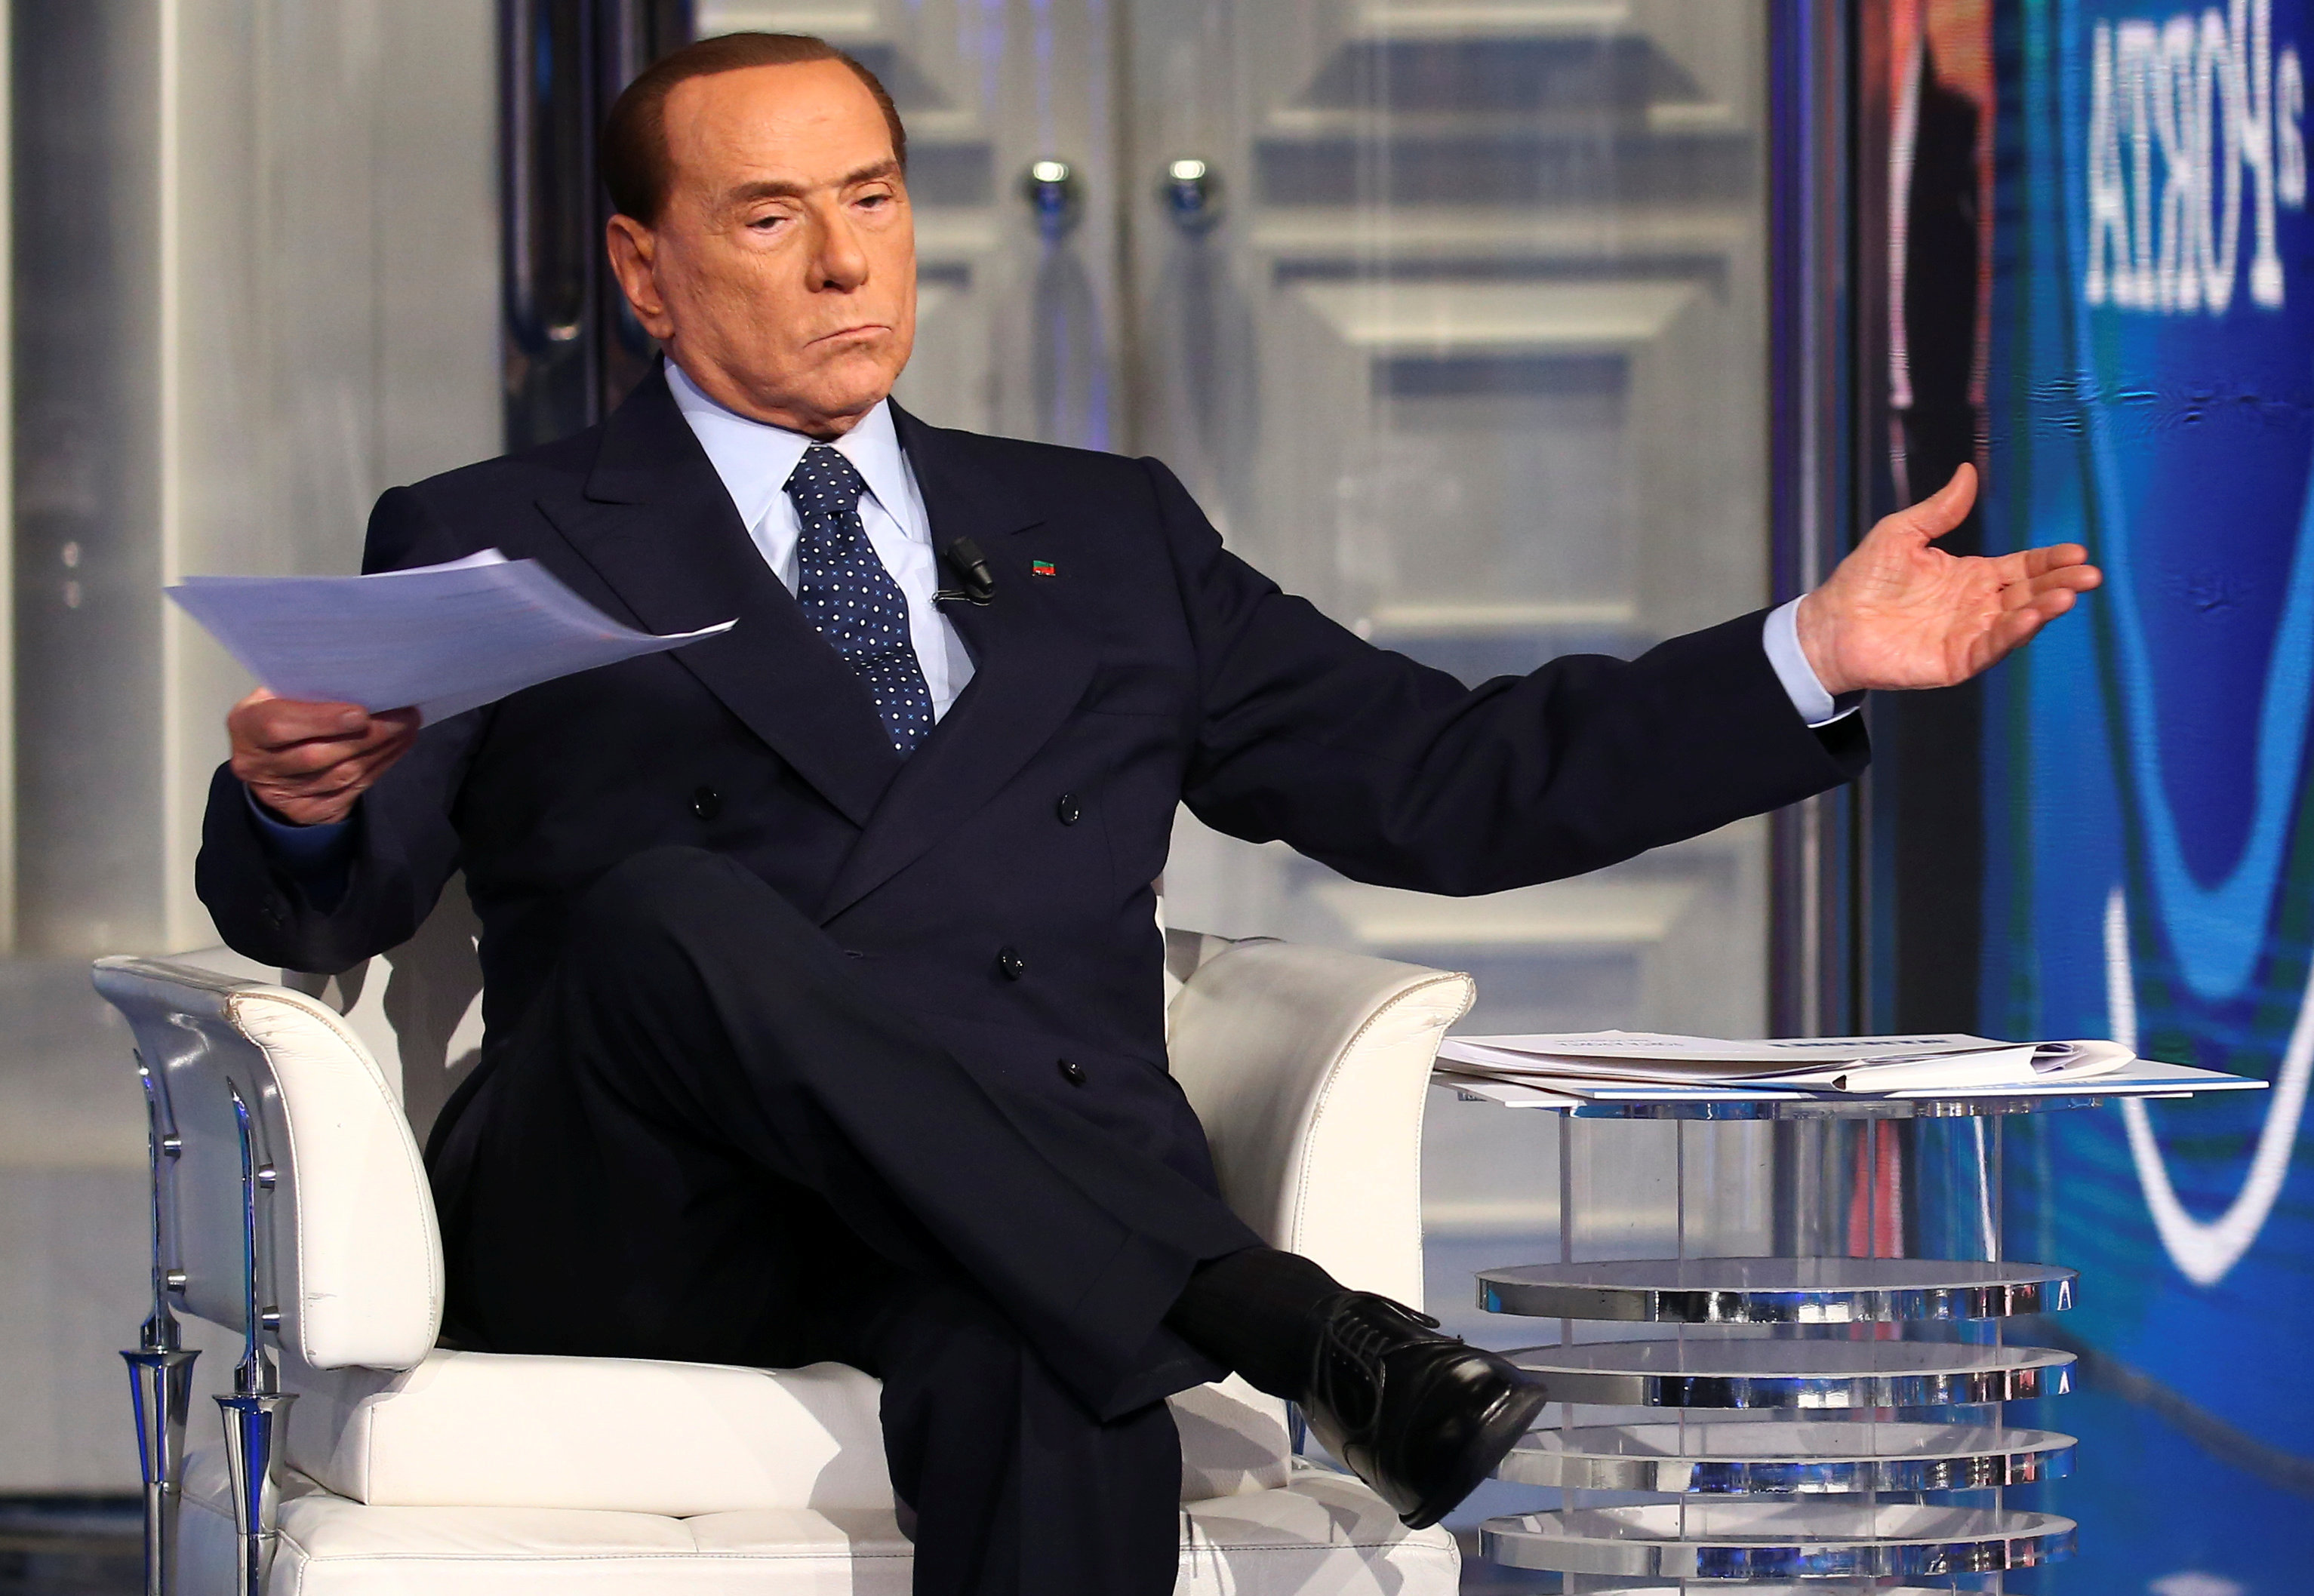 Italy's former Prime Minister Silvio Berlusconi gestures during the taping of the television talk show Porta a Porta (Door to Door) in Rome, Italy, February 14, 2018